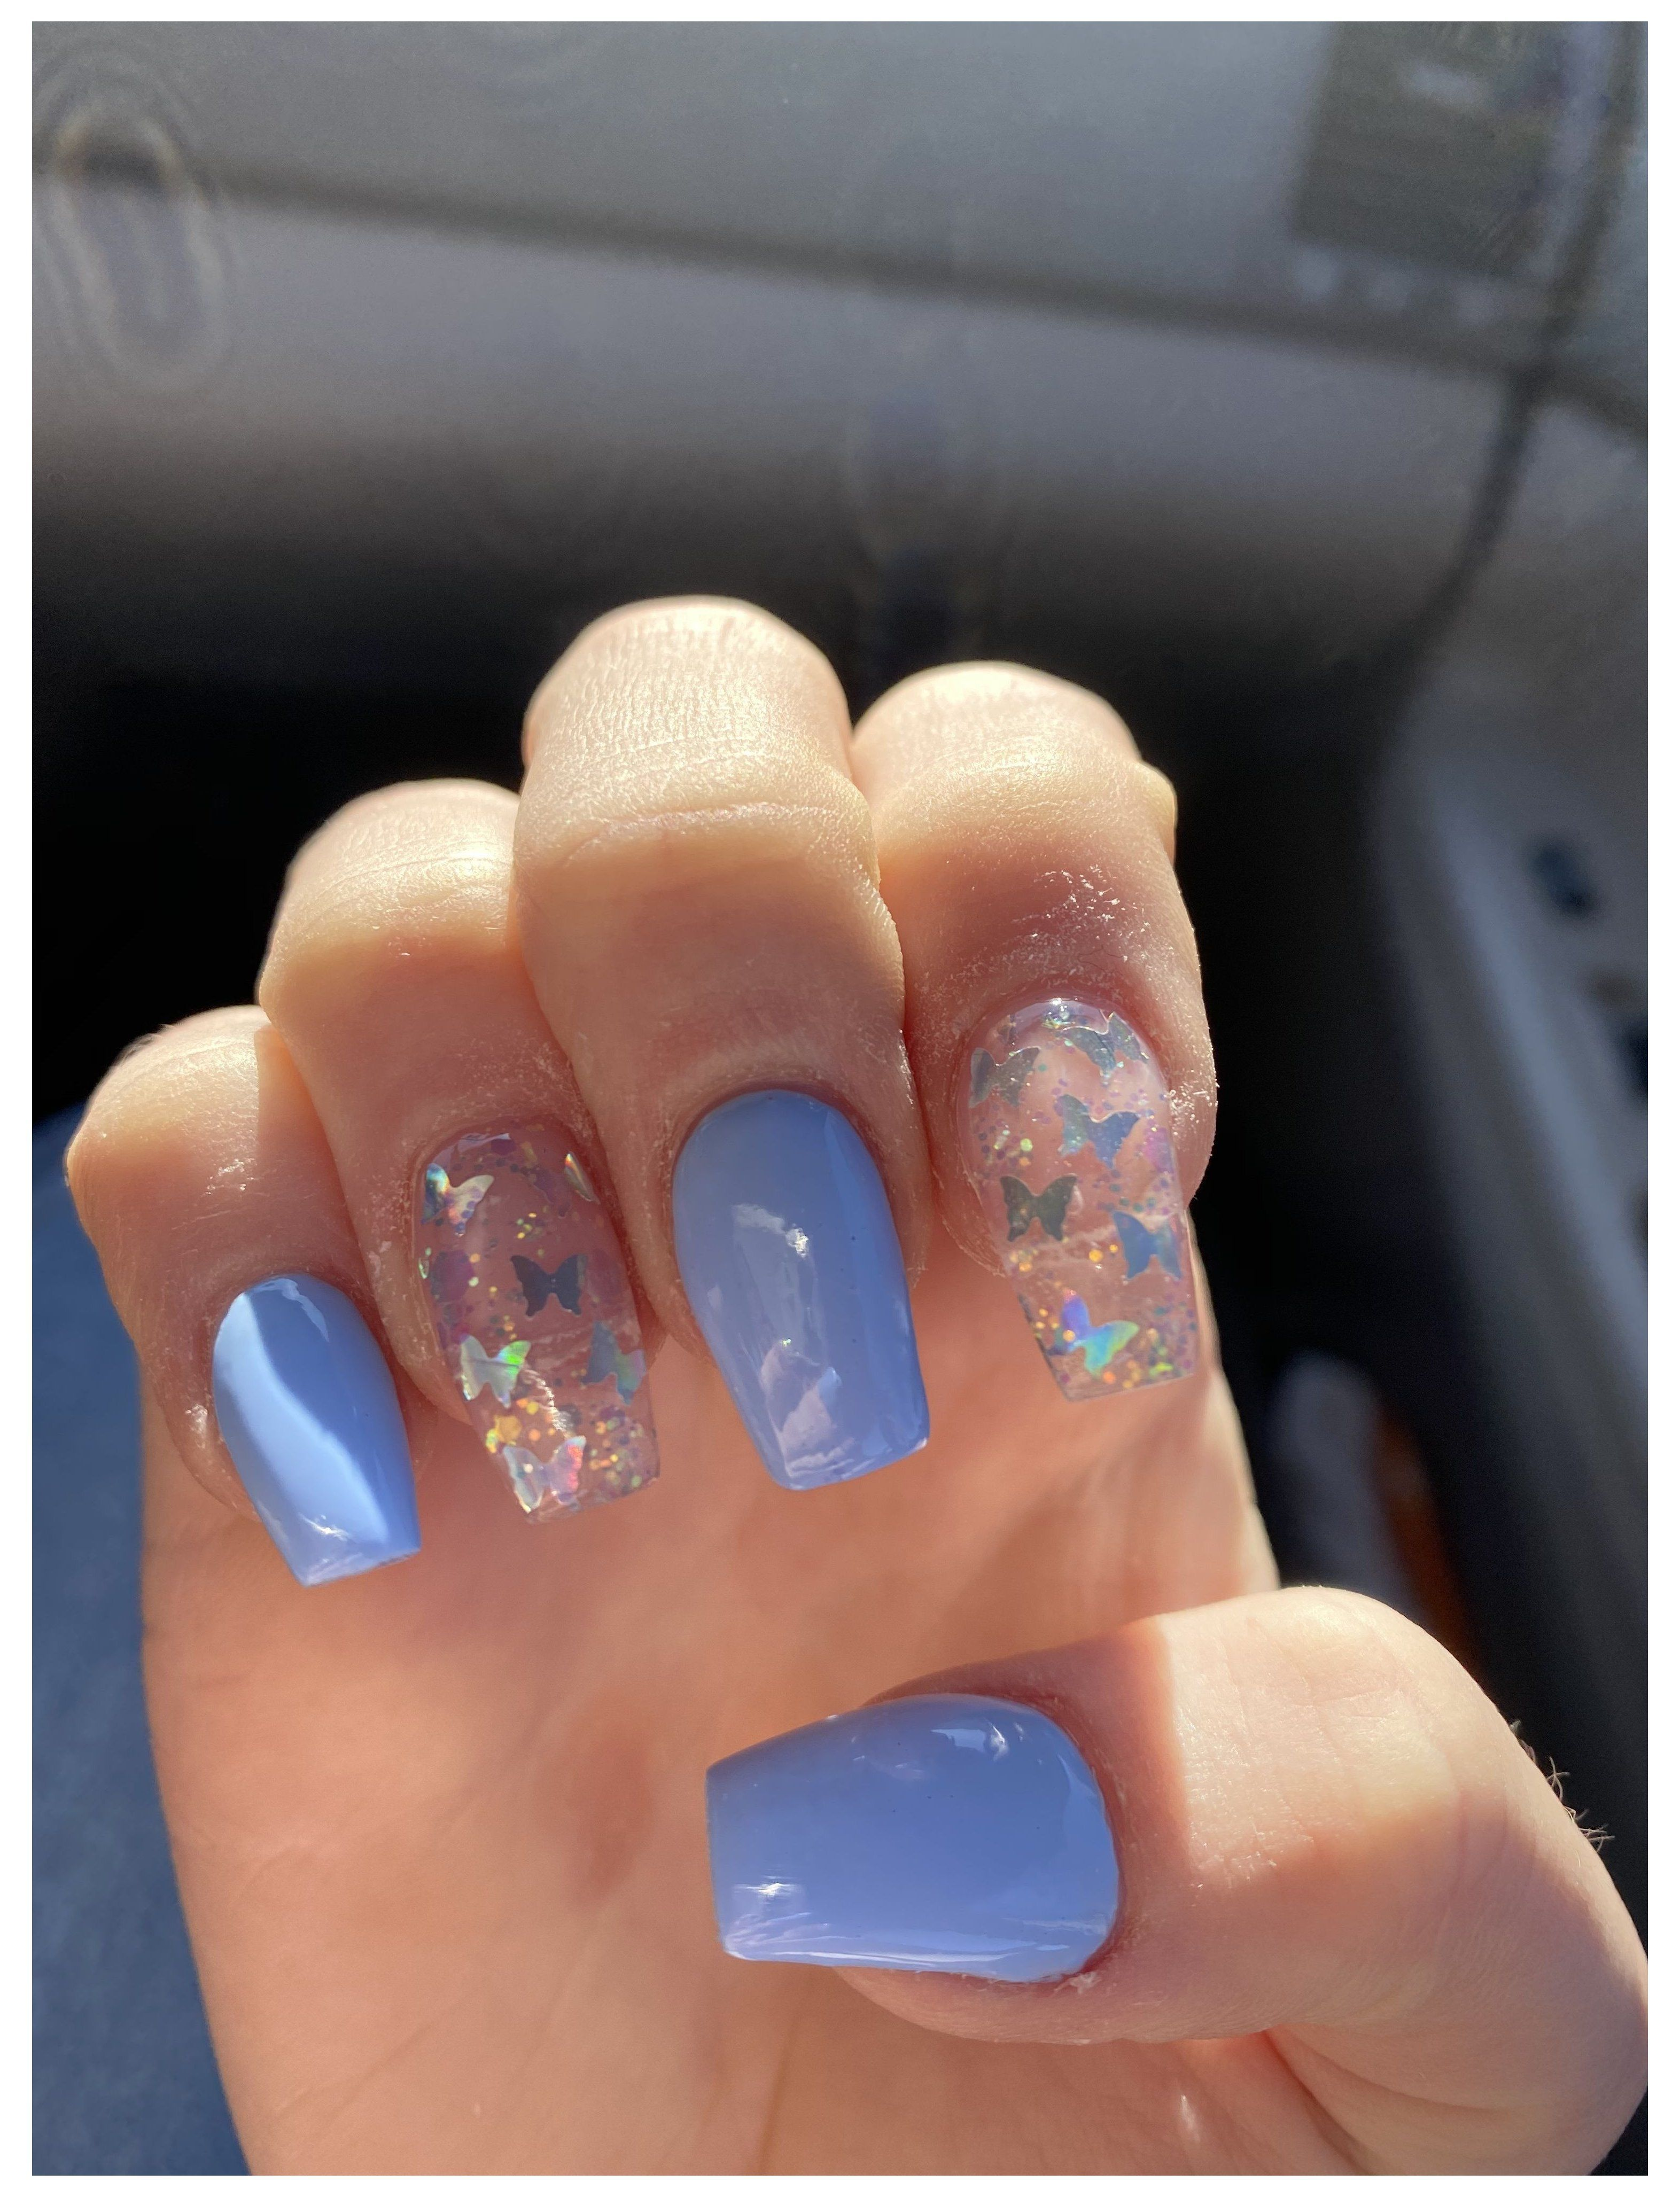 Acrylic Butterfly Nails Short Square Pondering Presenting On Your Own The At Hom In 2020 Short Acrylic Nails Designs Short Square Acrylic Nails Blue Glitter Nails